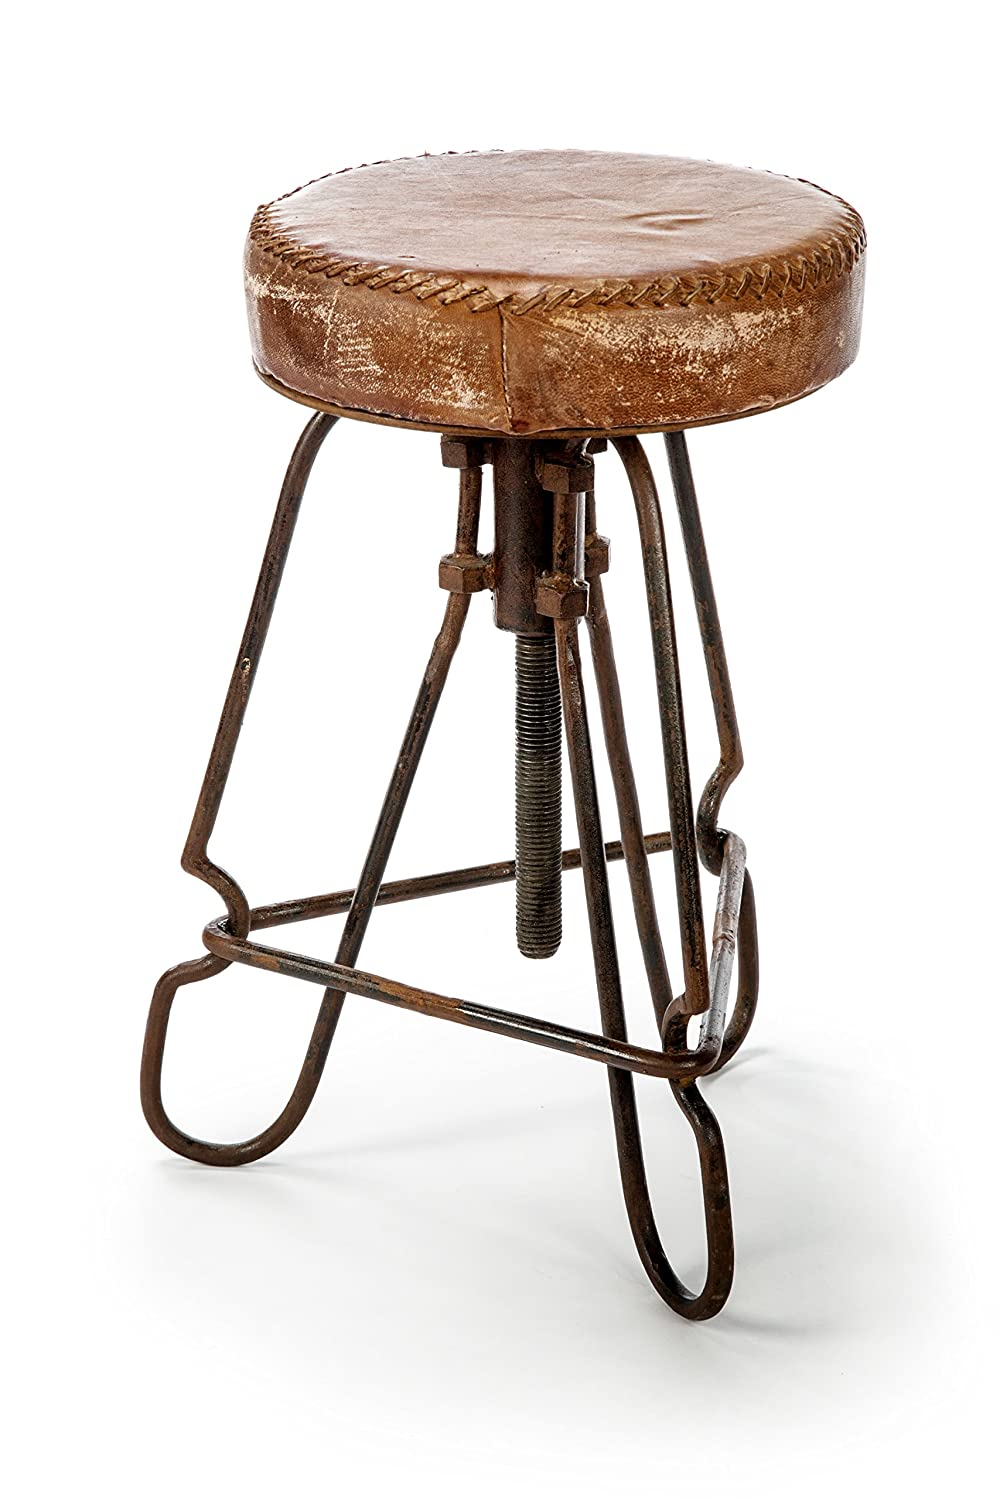 Awe Inspiring The Barrel Shack Bridgette Handmade Leather Stool From Gamerscity Chair Design For Home Gamerscityorg